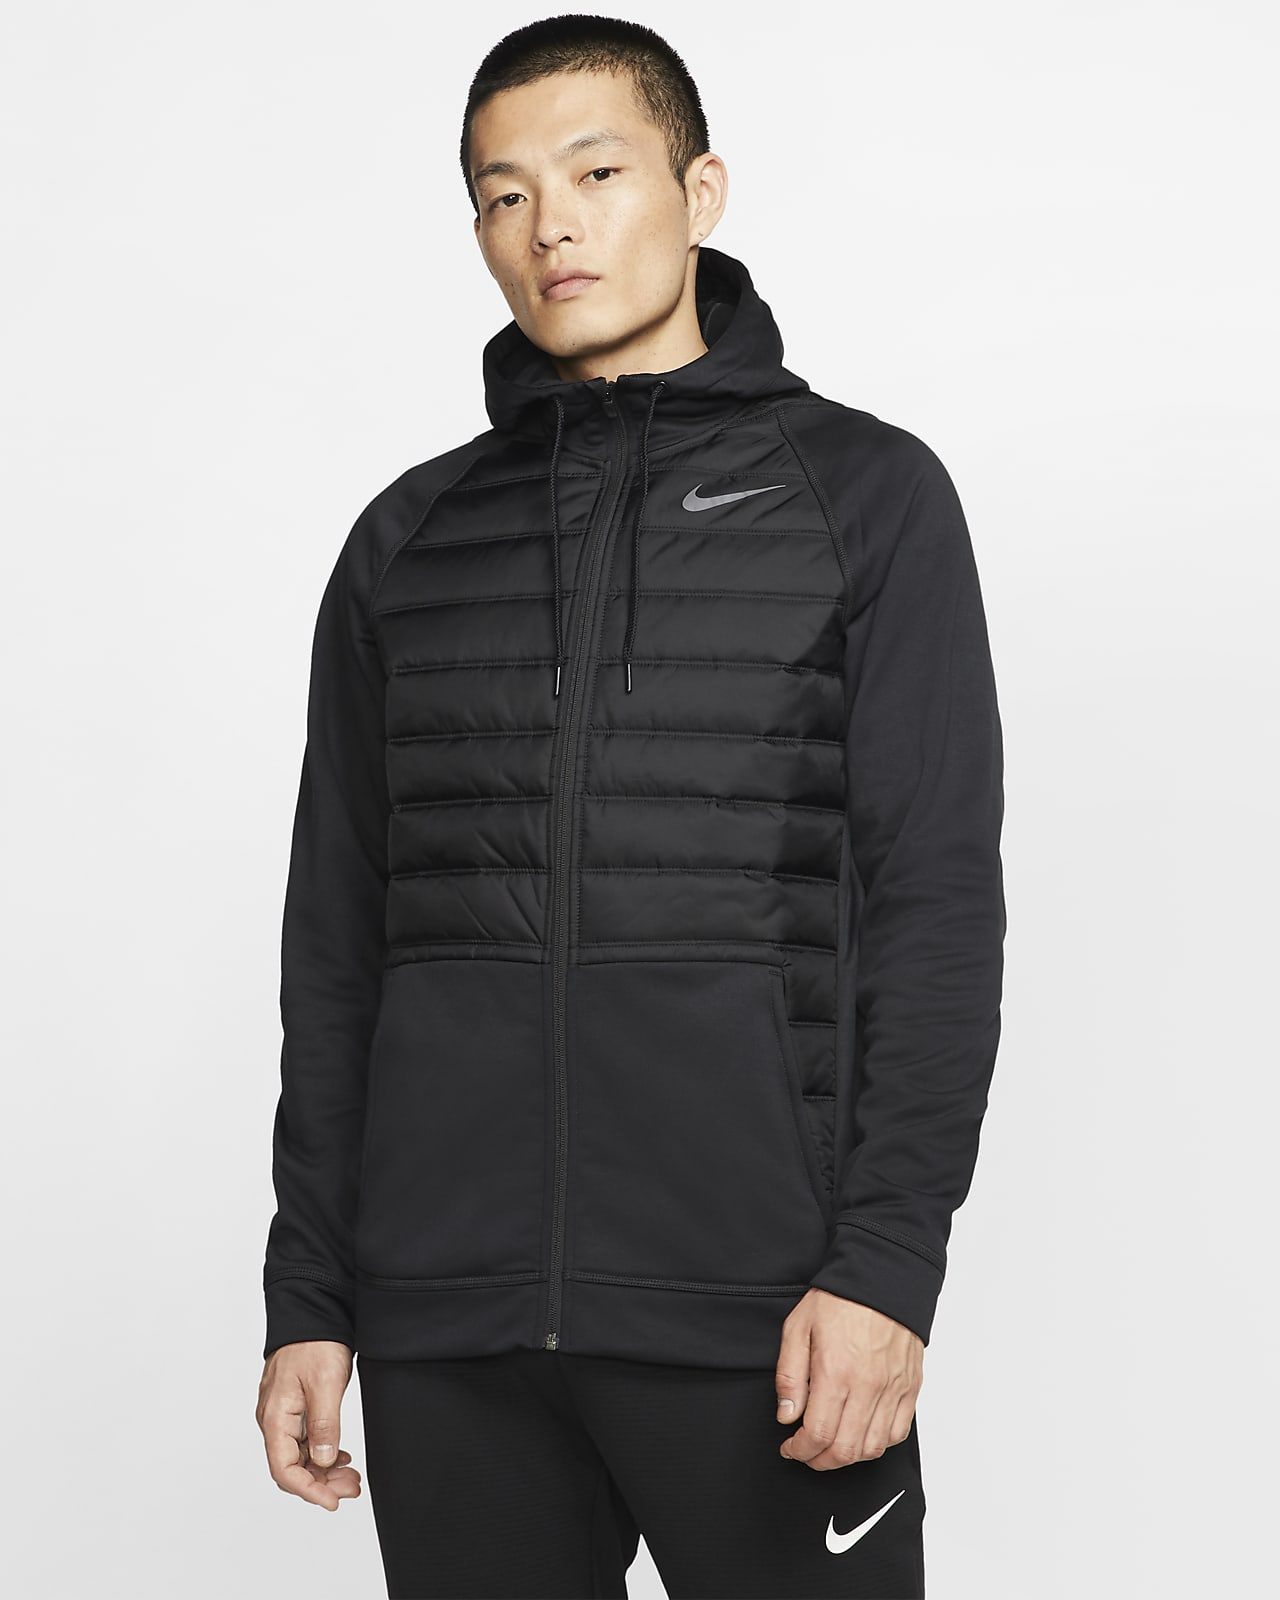 ganso Dedos de los pies Mula  Nike Therma Men's Full-Zip Training Jacket. Nike.com